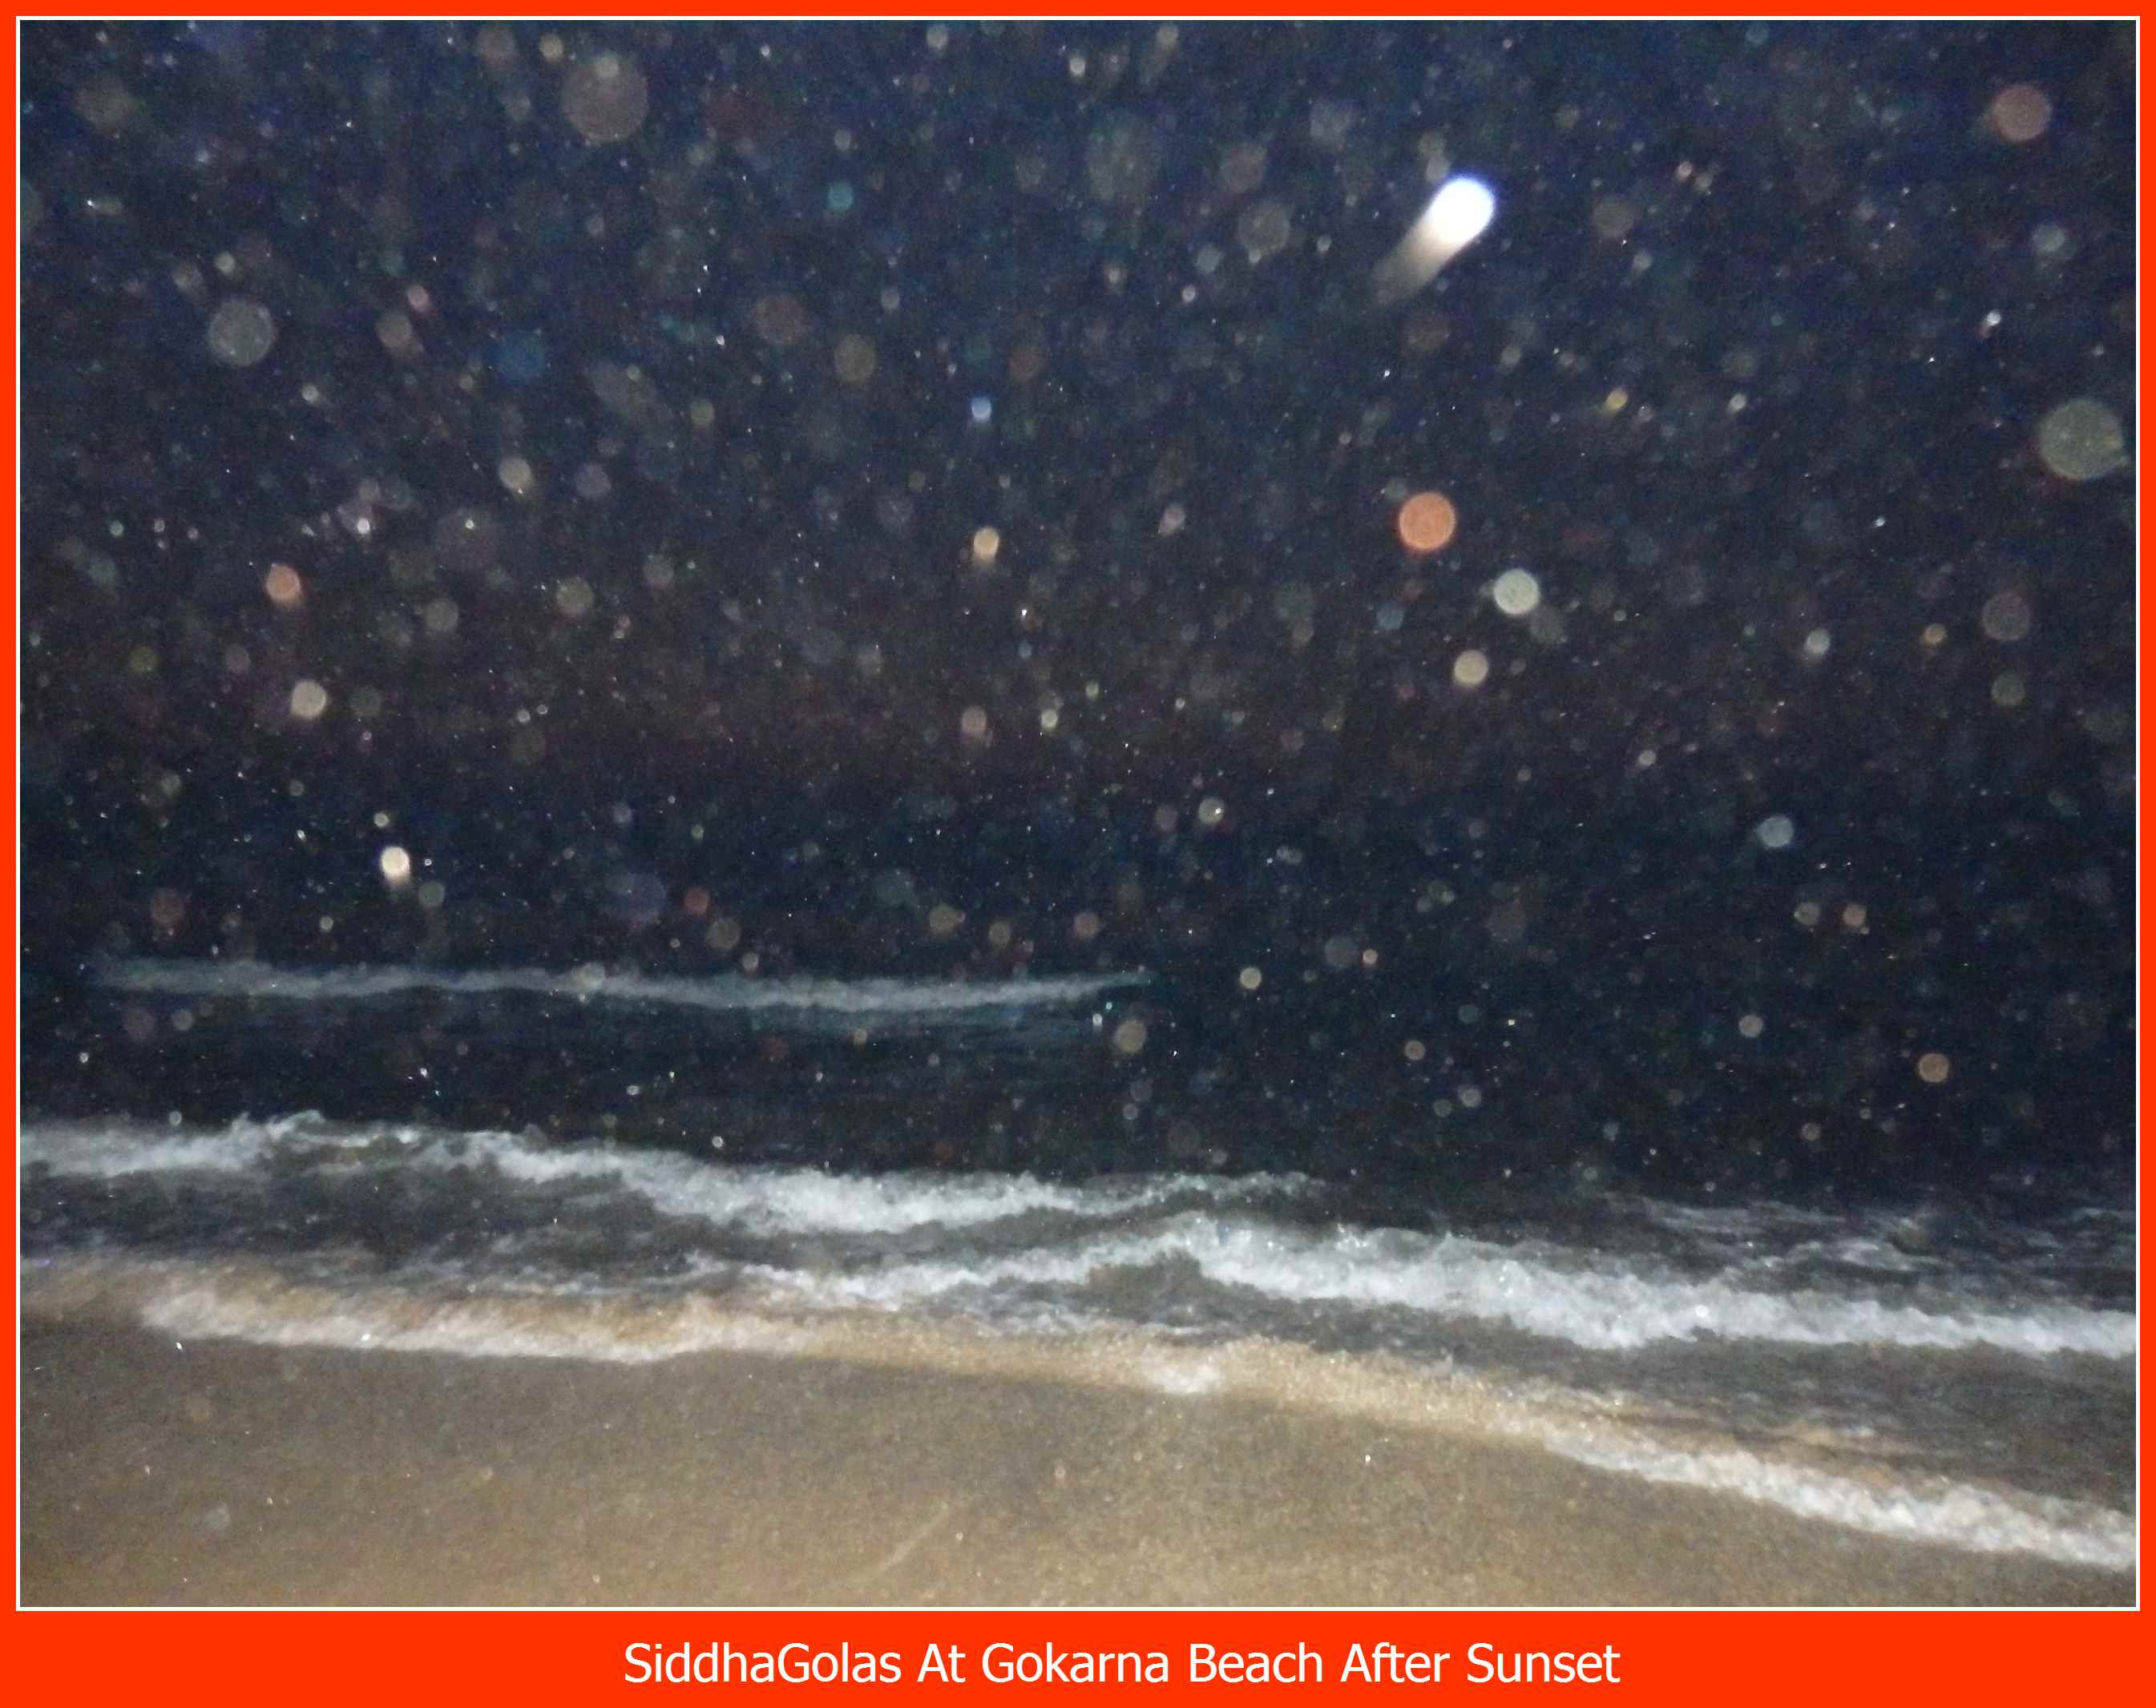 SiddhaGolas At Gokarna Beach After Sunset